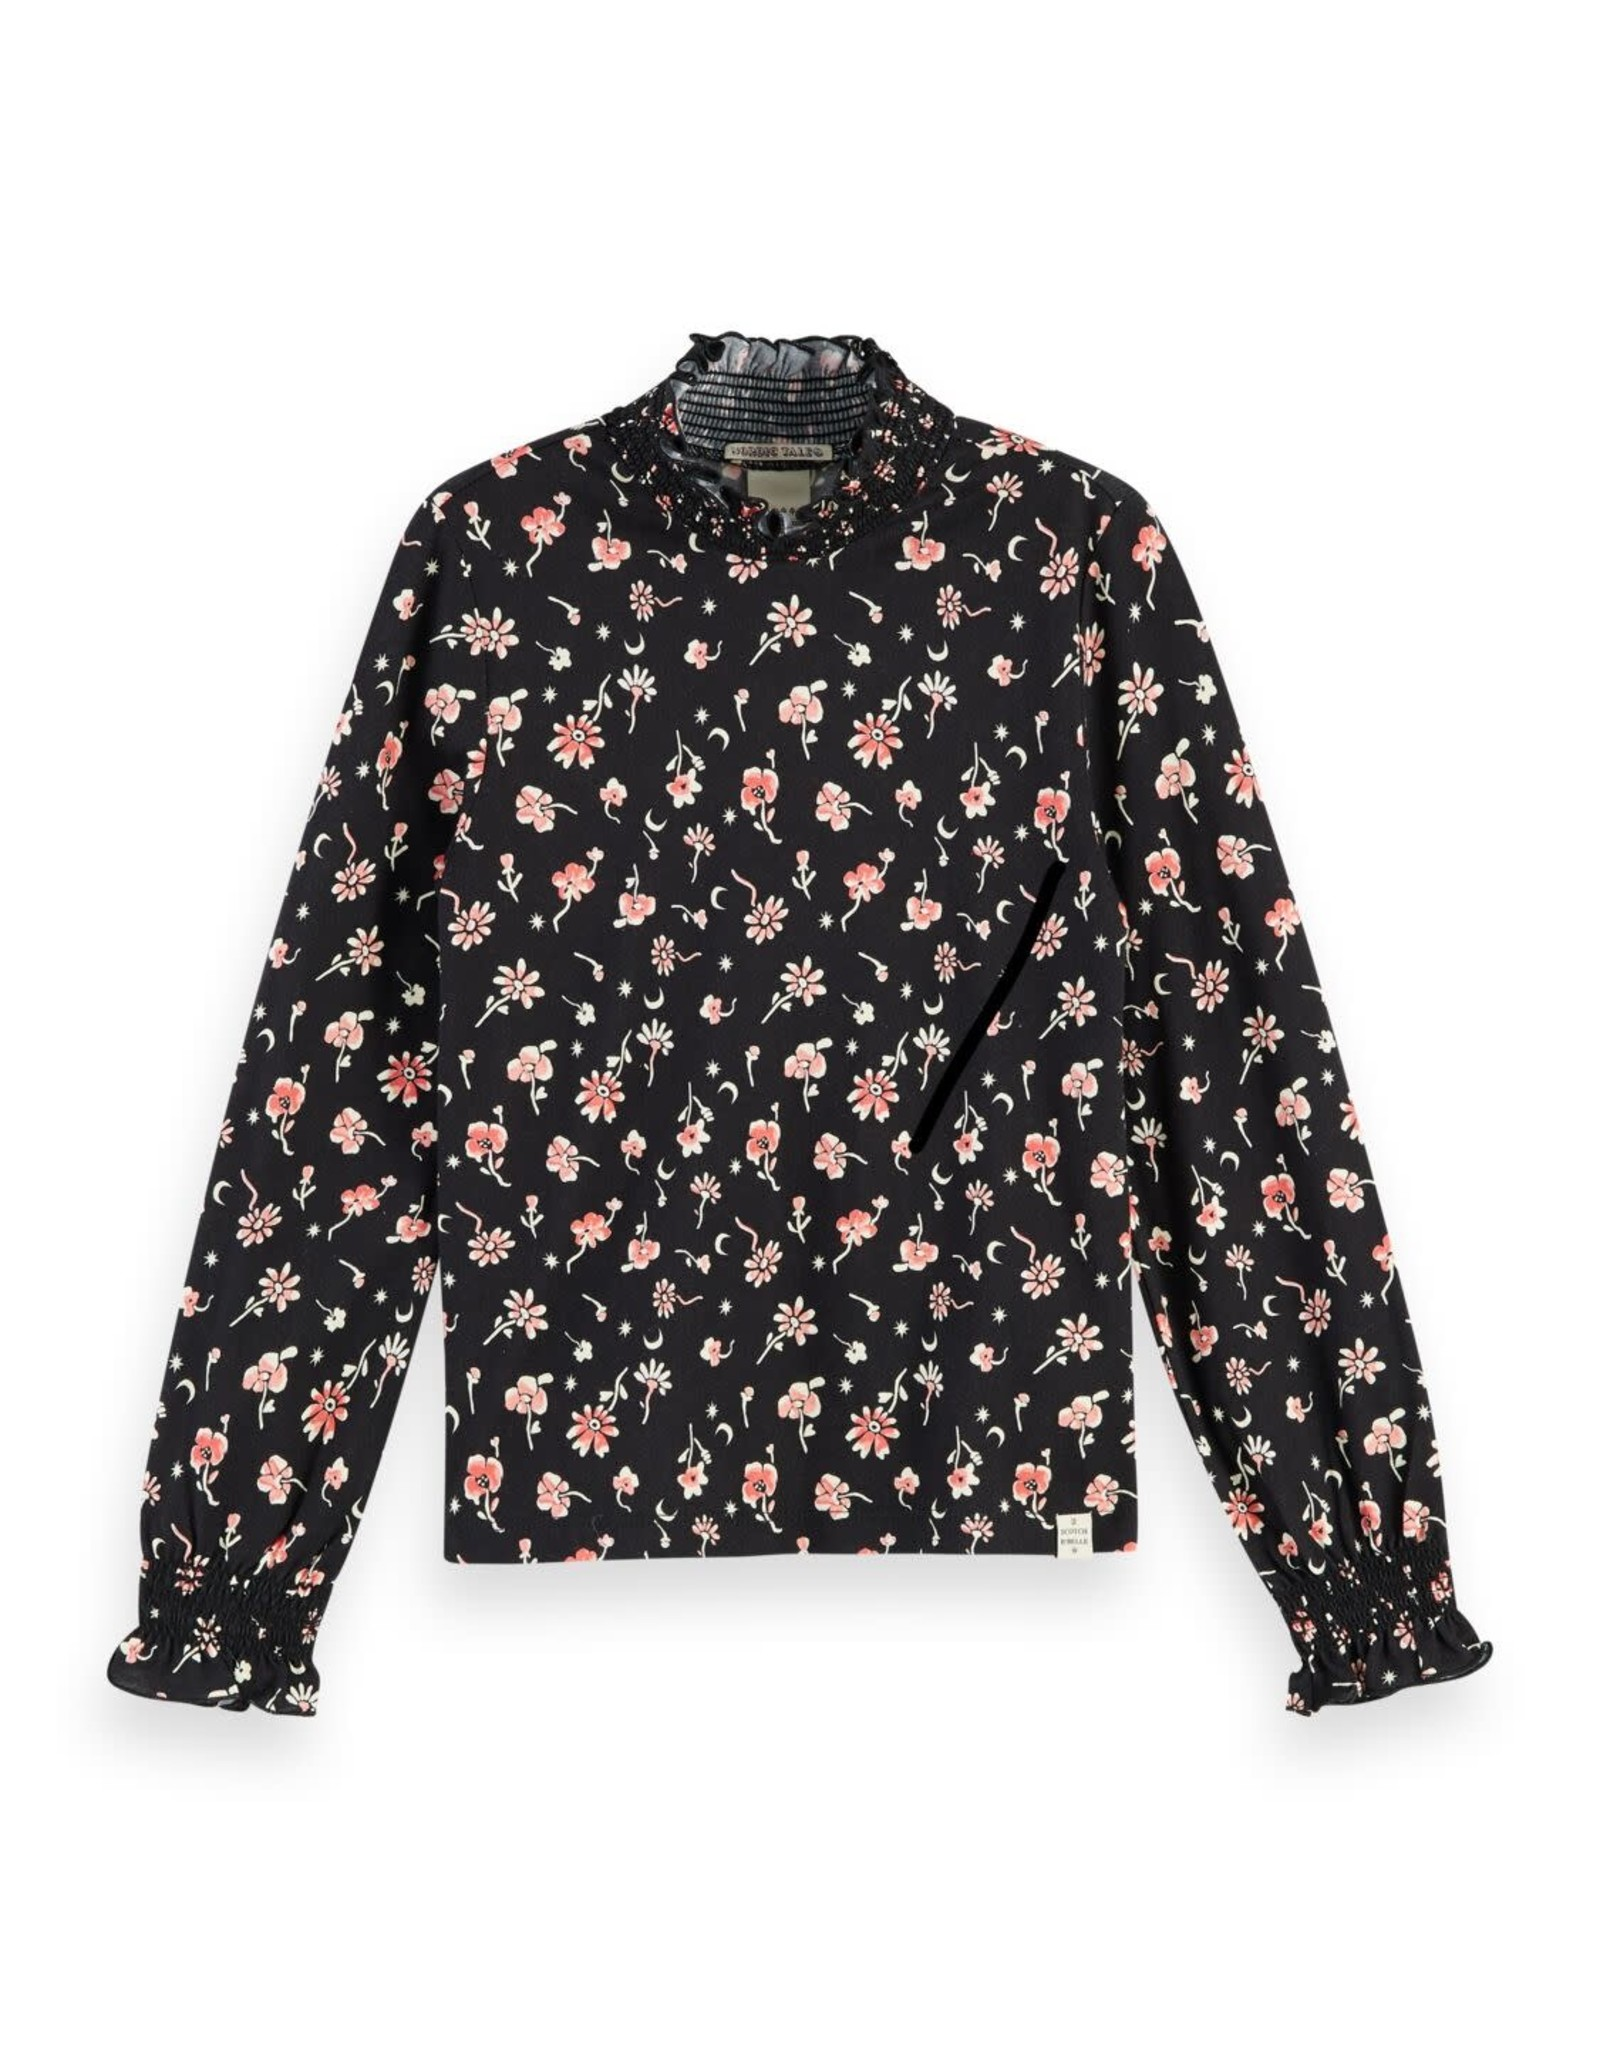 SCOTCH REBELLE All-over printed long sleeve tee with smock details 0222-Combo F